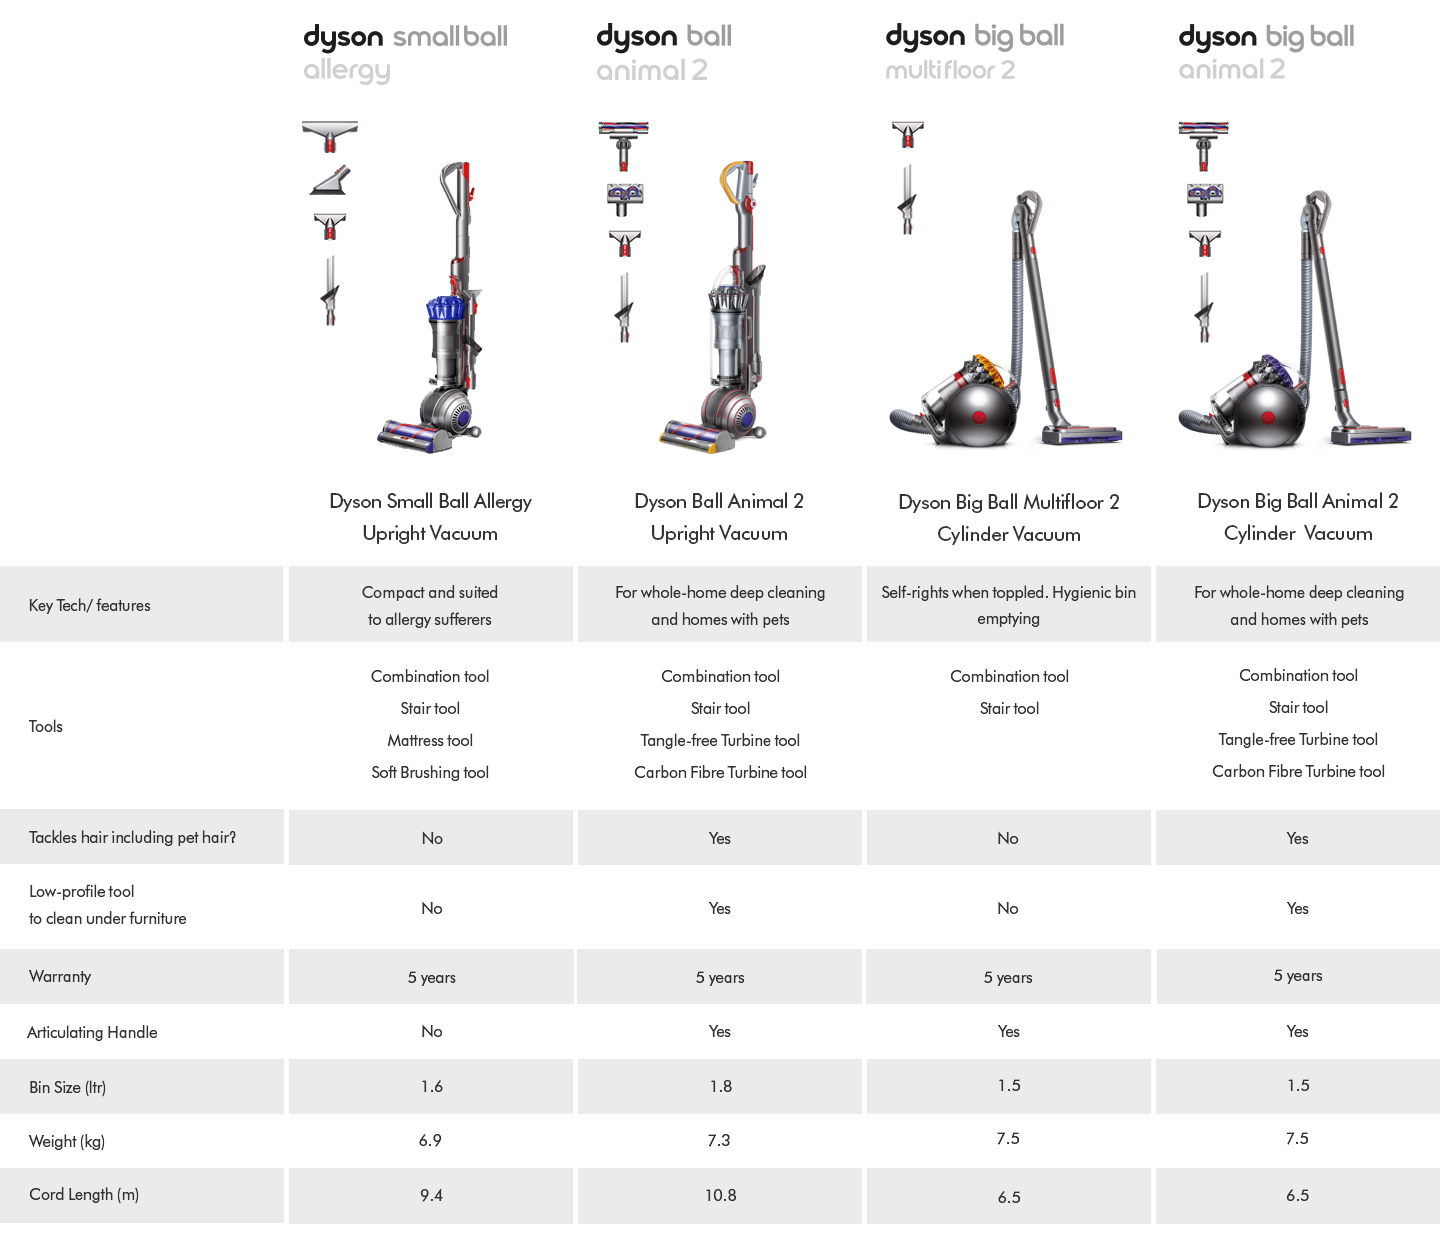 Dyson Corded Vacuum Cleaners Comparison Table